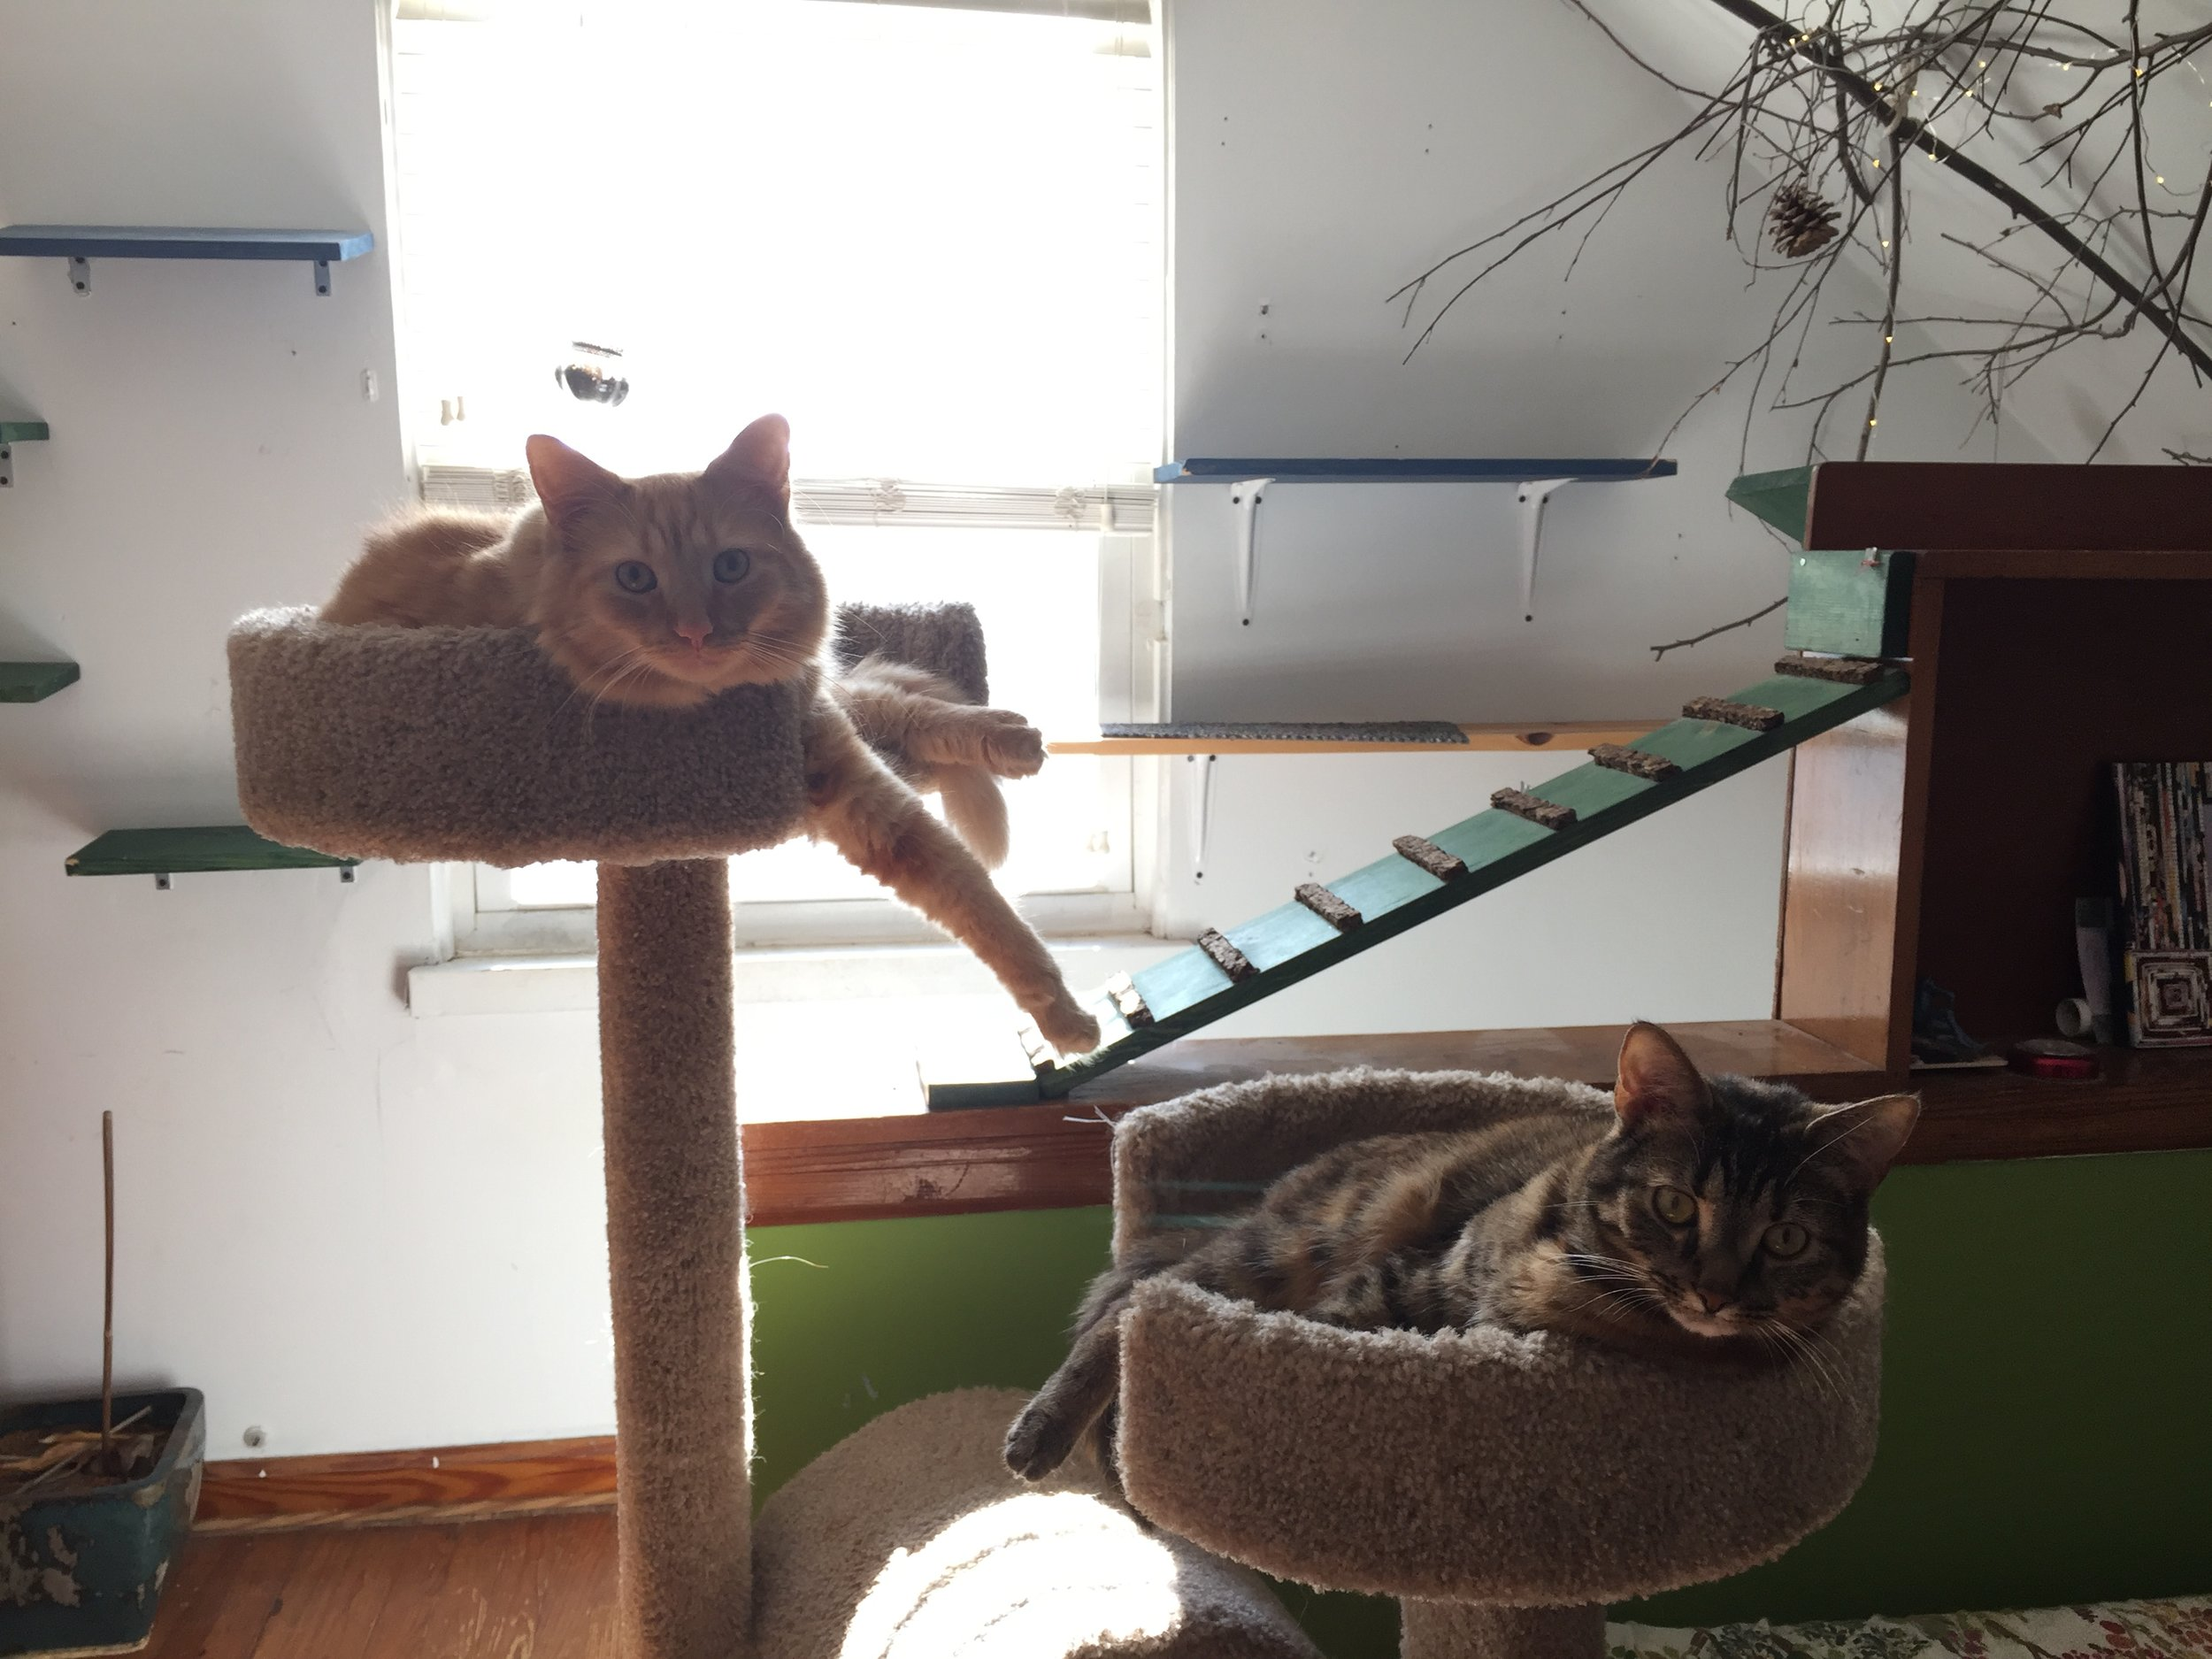 Check out resources on how to provide environmental enrichment for indoor cats!